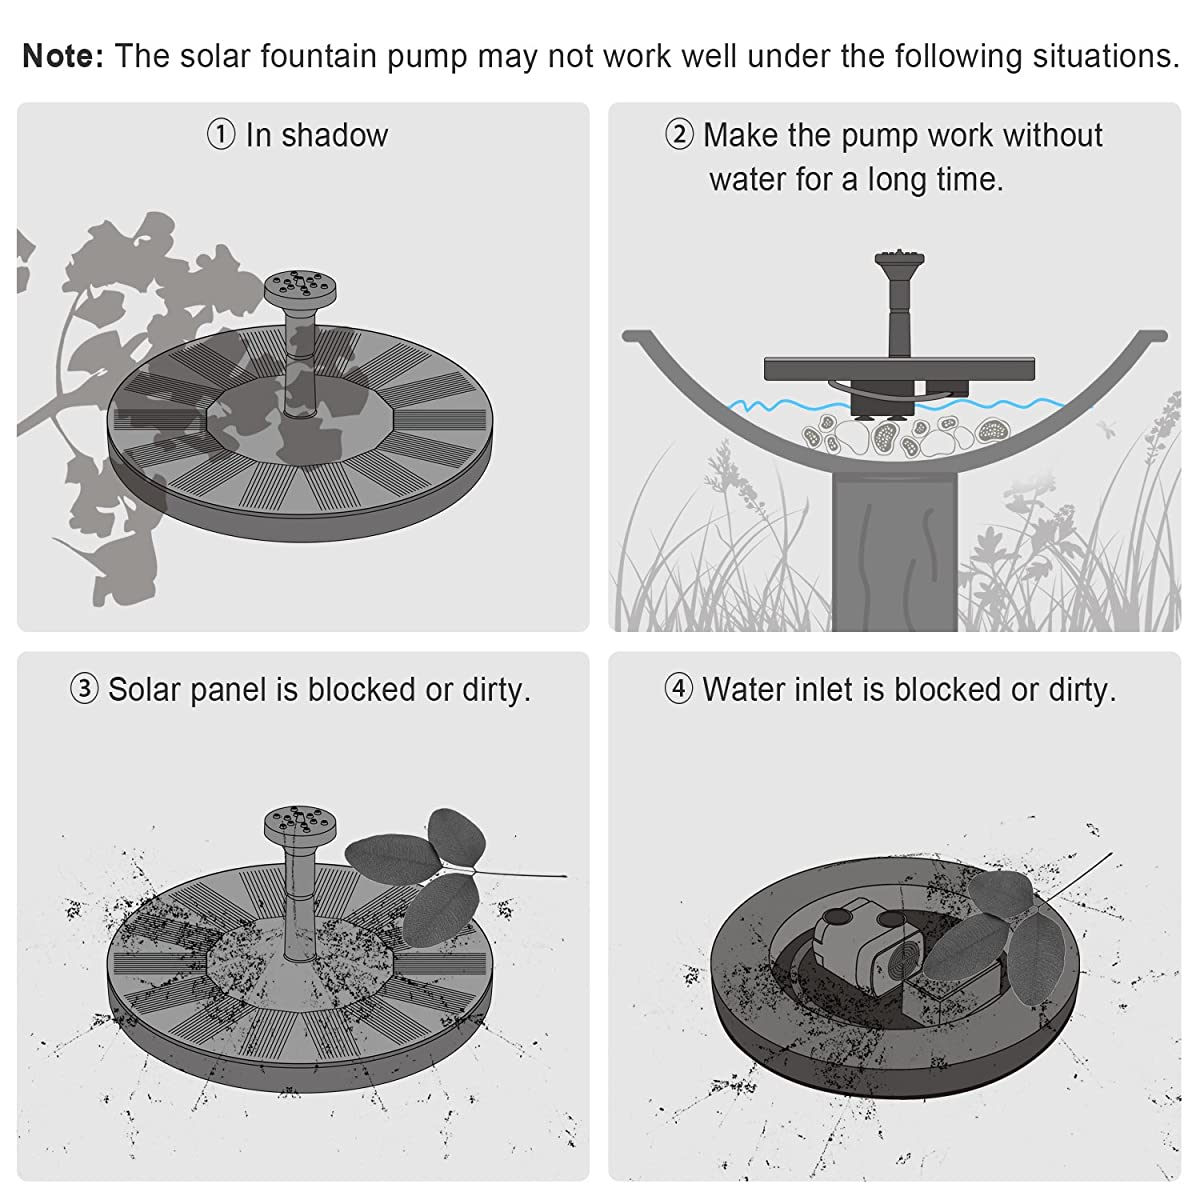 Ankway Solar Bird Bath Fountain Pump, 1.4W Free Standing Solar Fountain Water Pumps Panel Kit Outdoor Birdbath Watering Submersible Pump for Garden and Patio